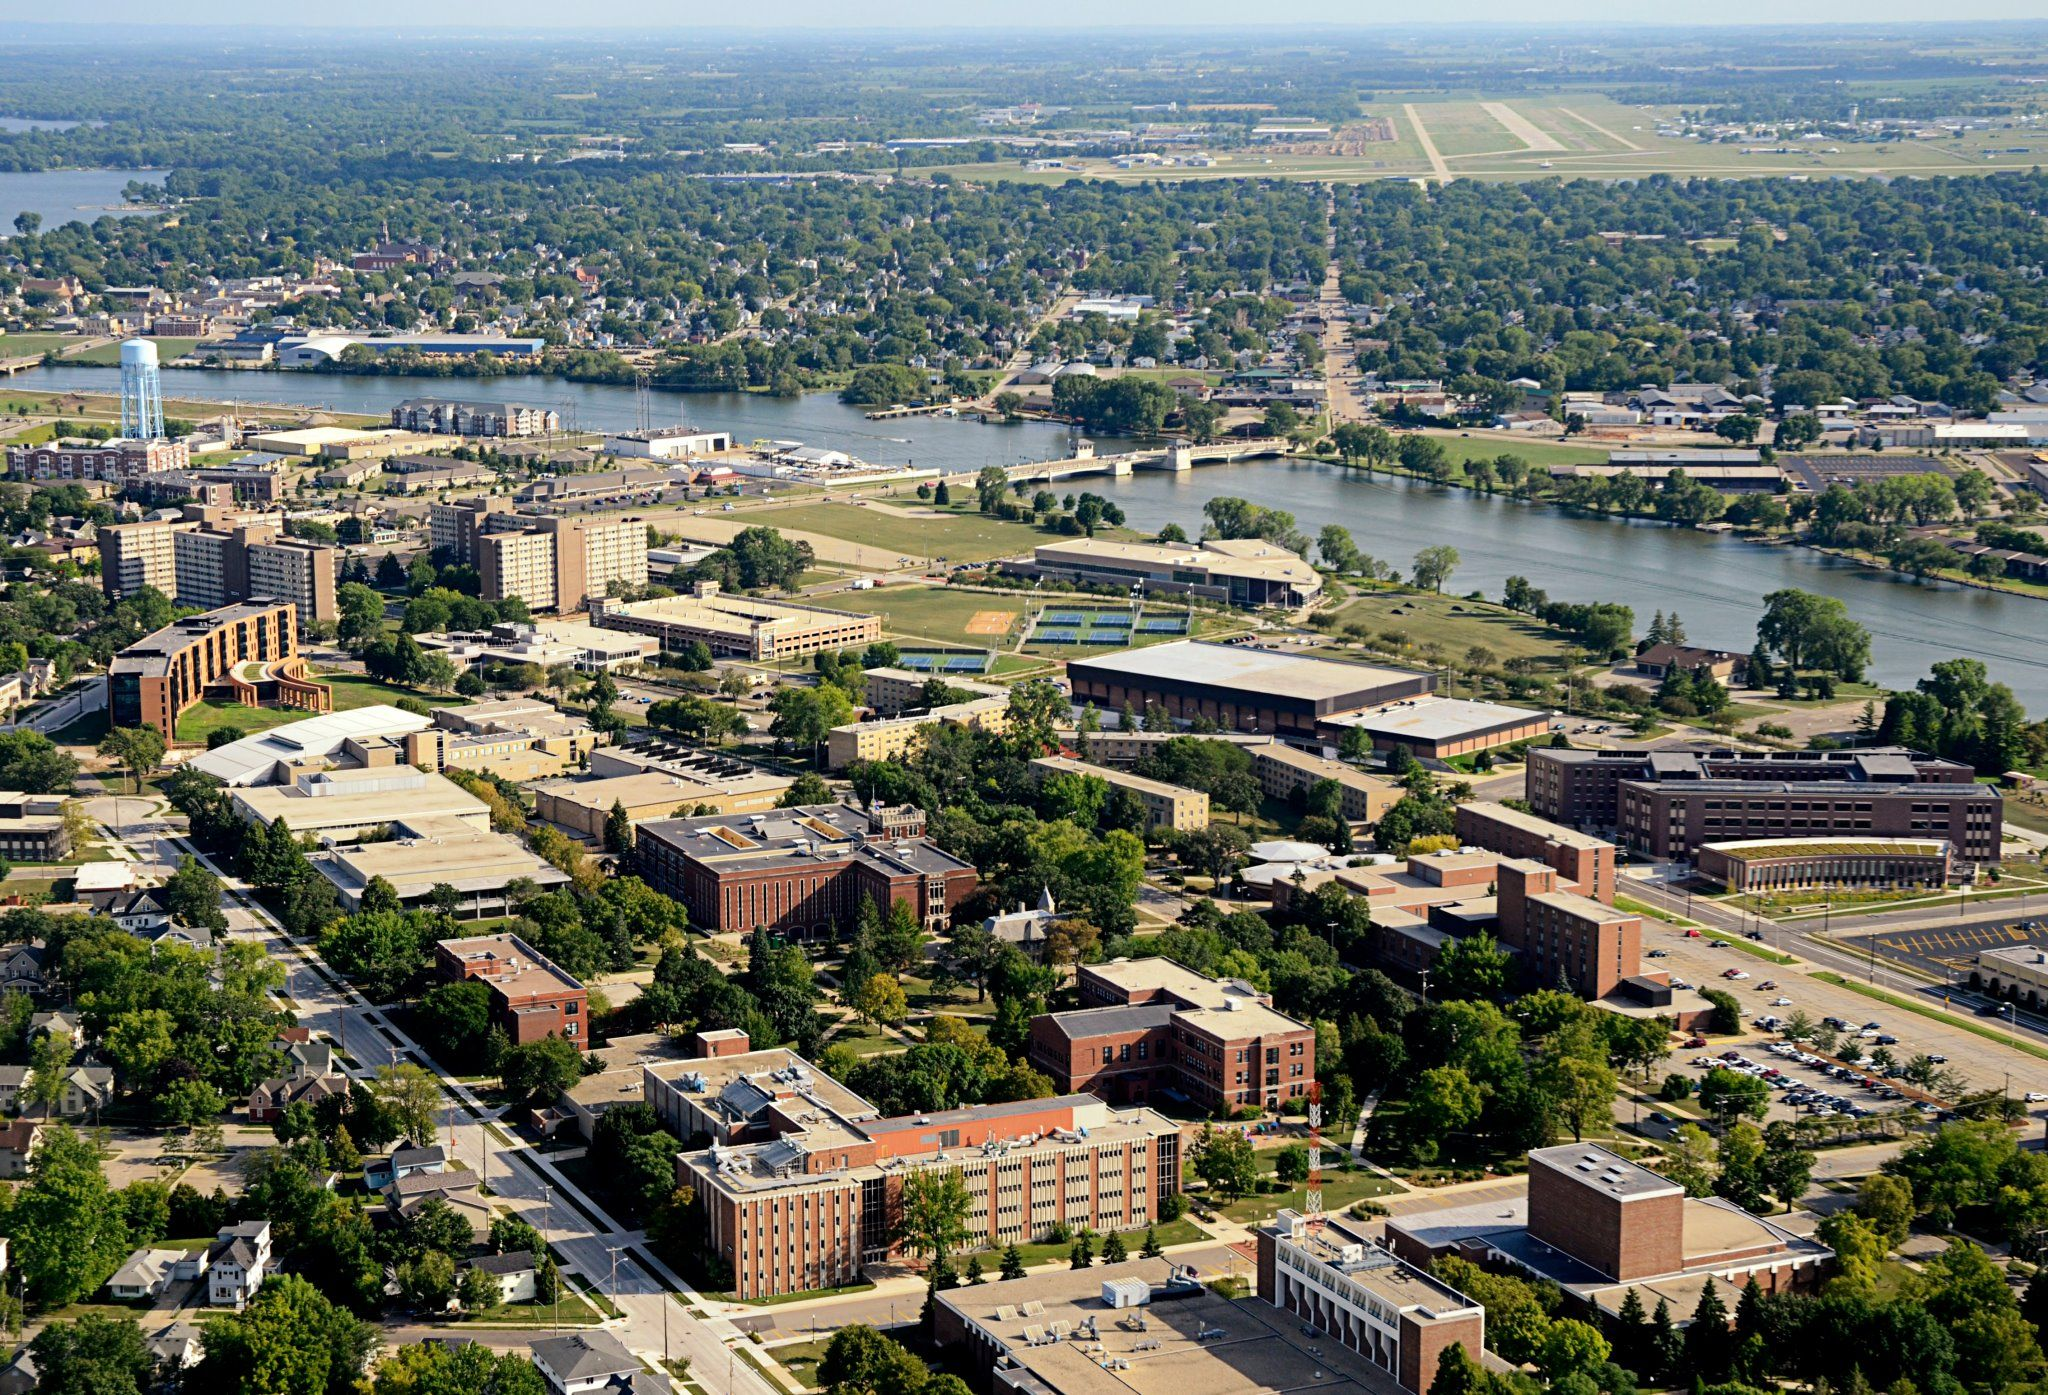 Oshkosh Campus Map.The Uw Oshkosh Campus Has Many Different Places And Spaces To Host A